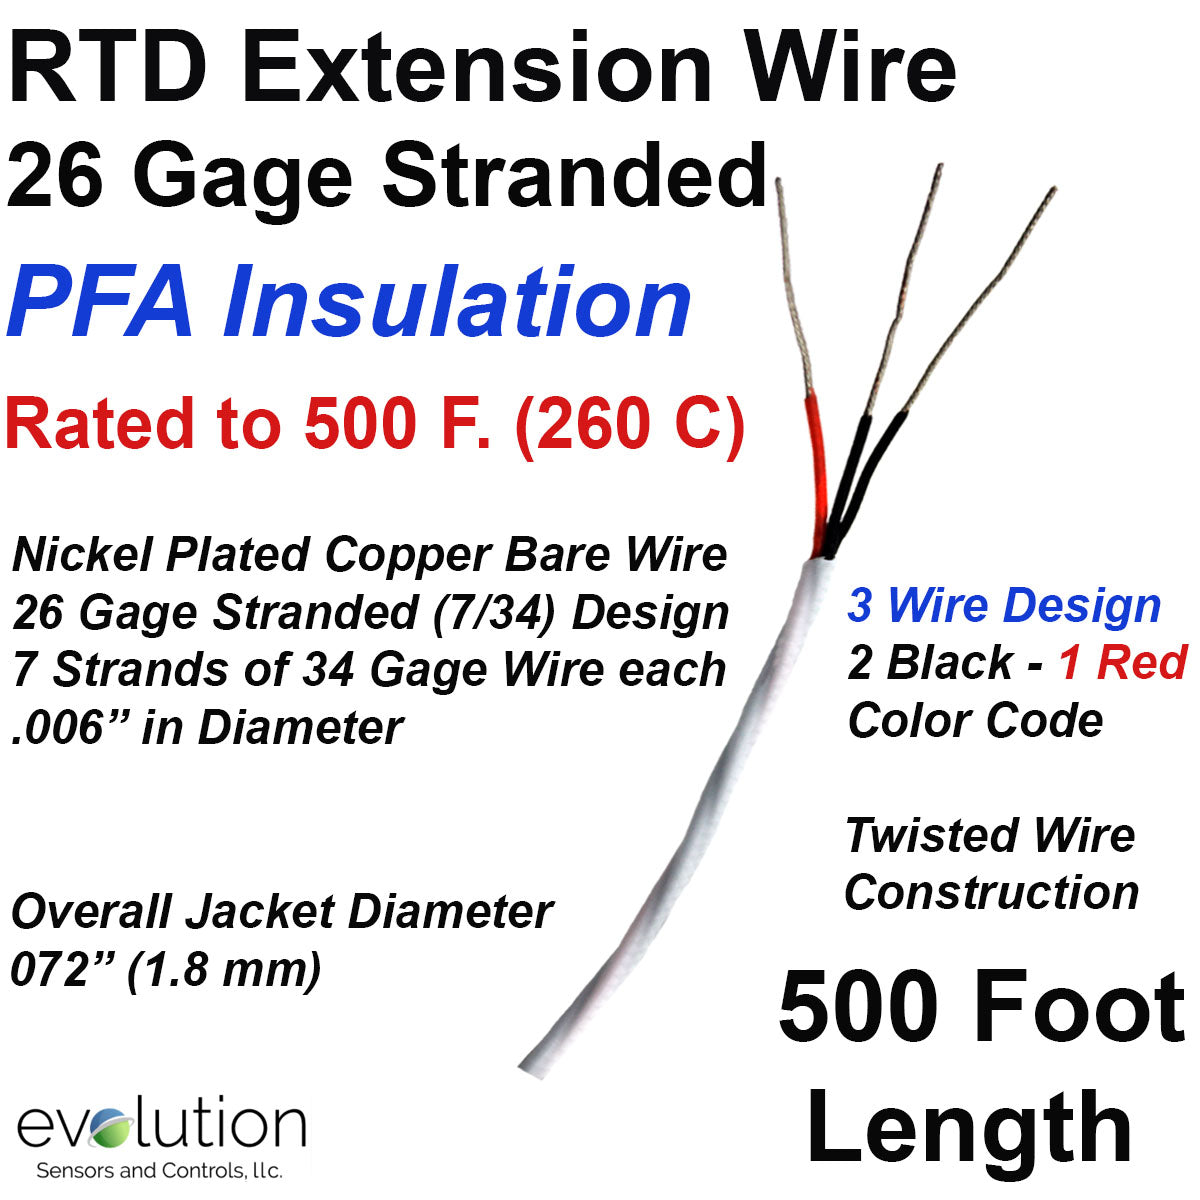 Rtd extension wire 500 foot length 26 gage stranded 3 wire design rtd extension wire 26 gage stranded 3 wire design pfa insulated 500 ft long keyboard keysfo